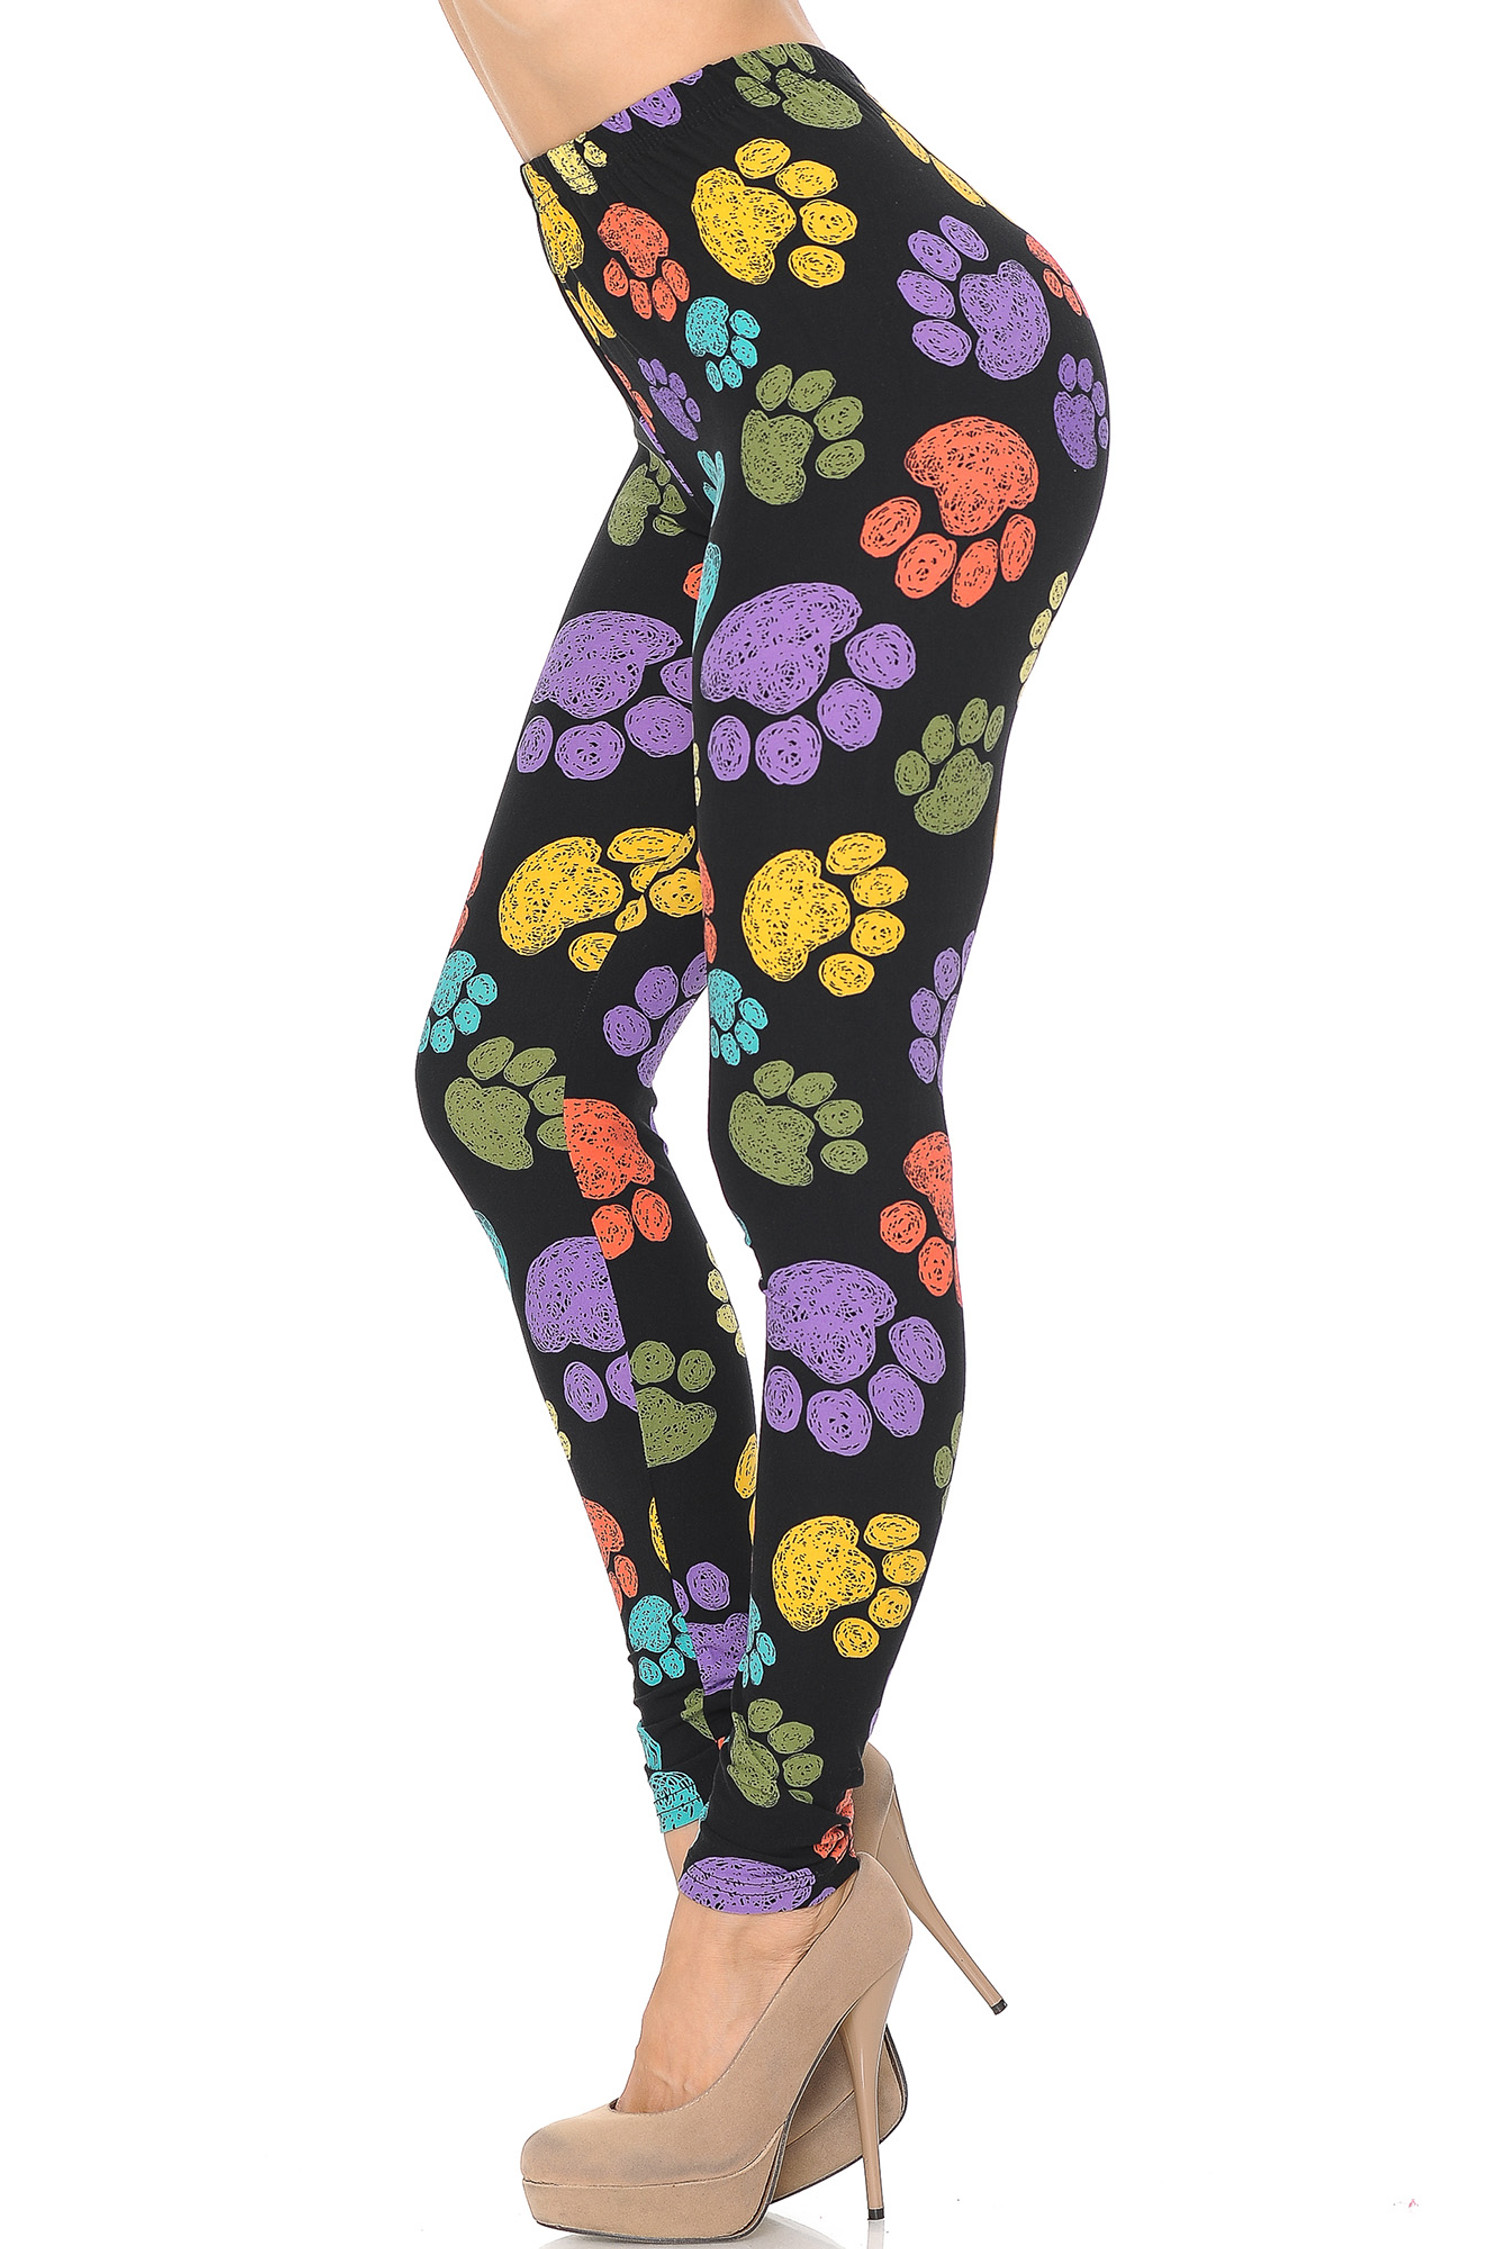 Left side of Creamy Soft Colorful Paw Print Plus Size Leggings - USA Fashion™